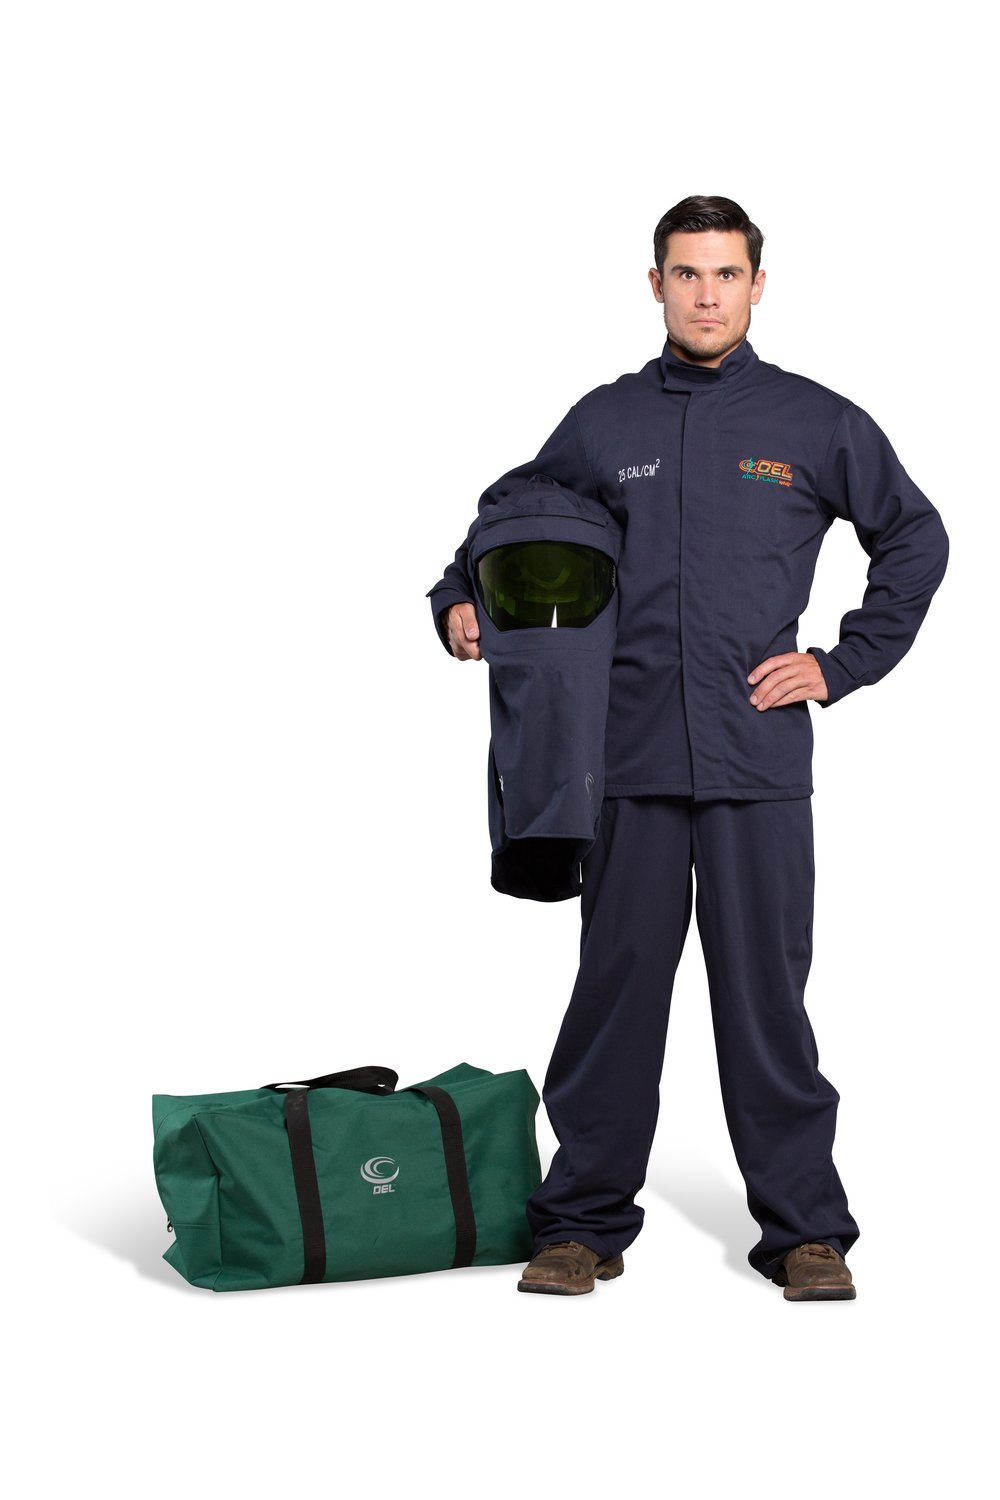 25 Cal Jacket and Bib Kit